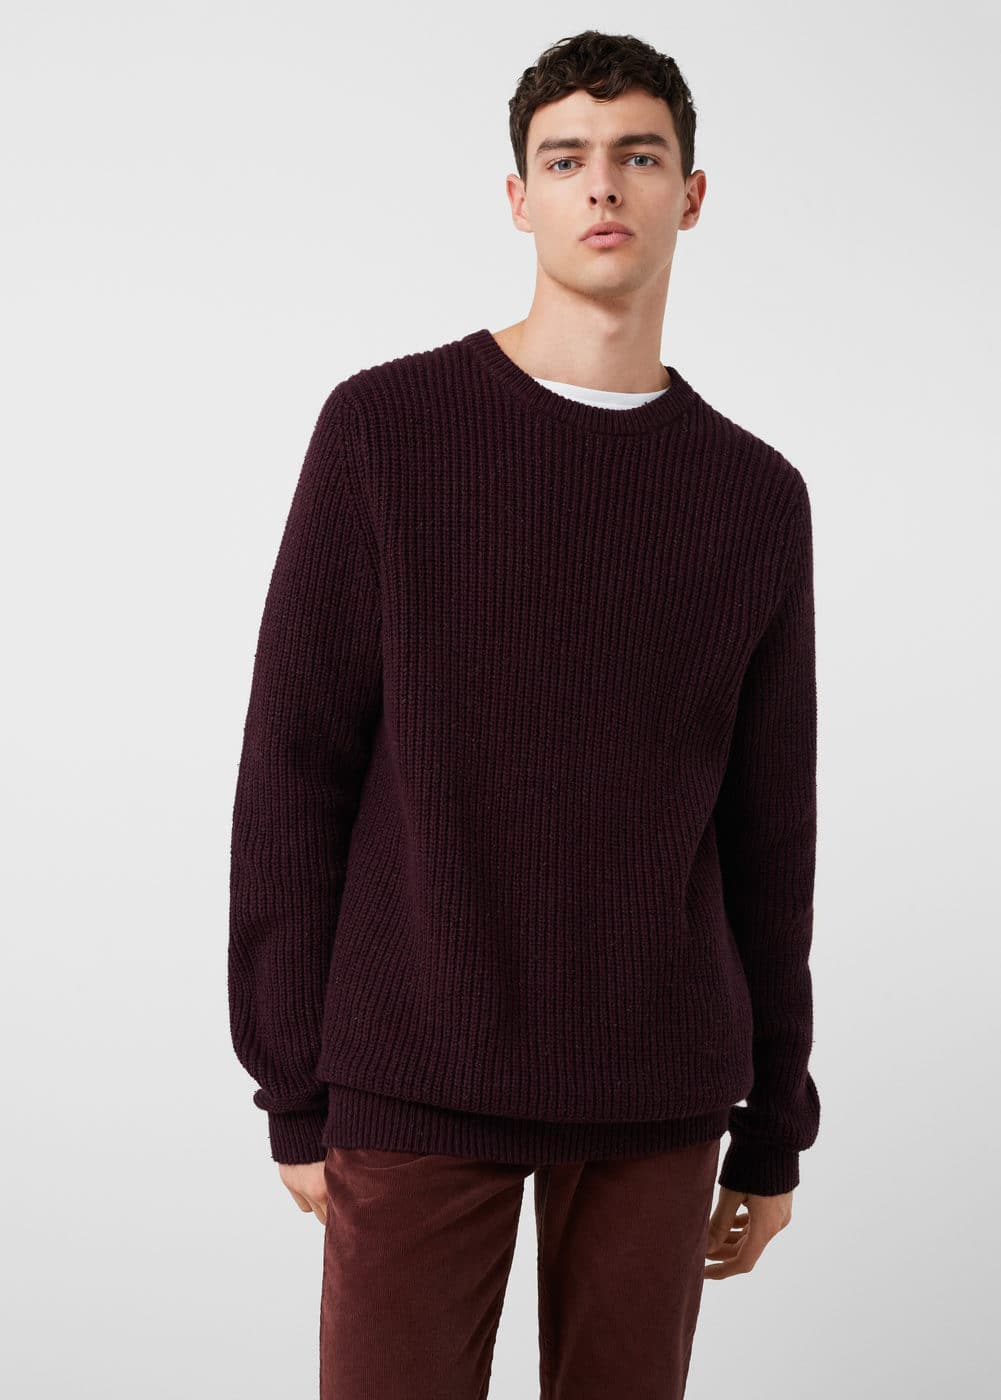 Cotton wool-blend ribbed sweater | MANGO